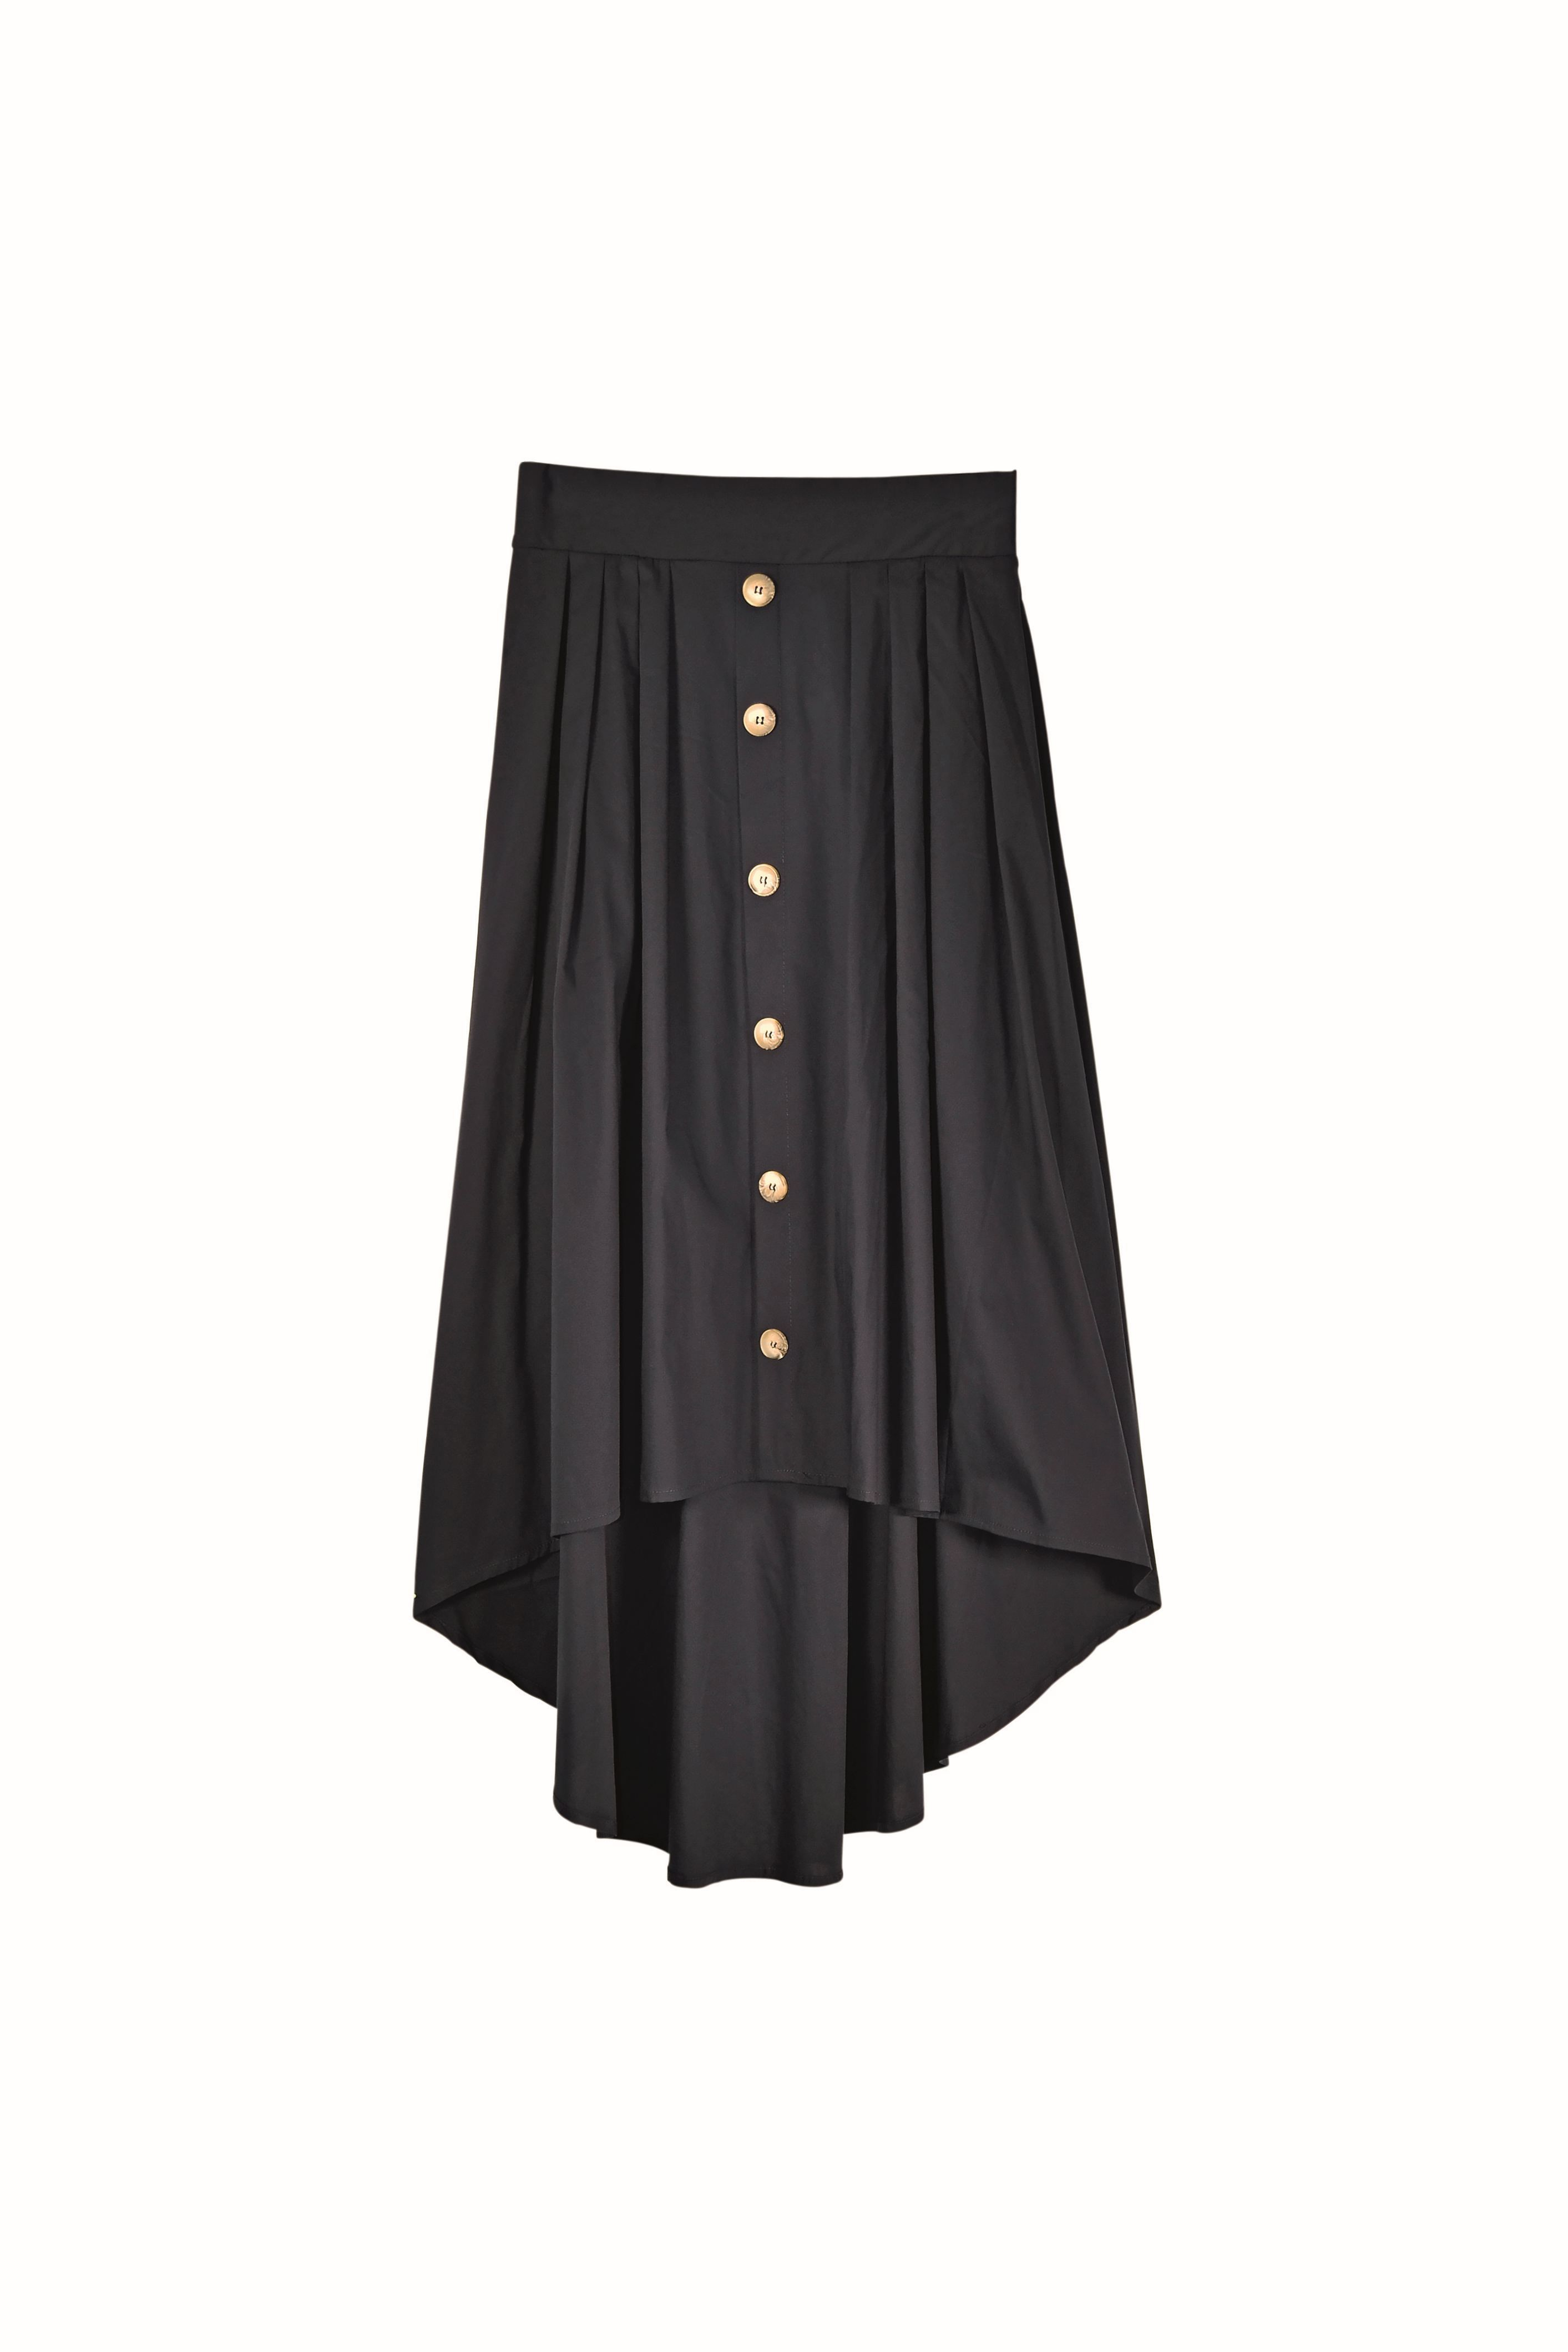 Humility Jupe Skirt in Navy HB1088 42